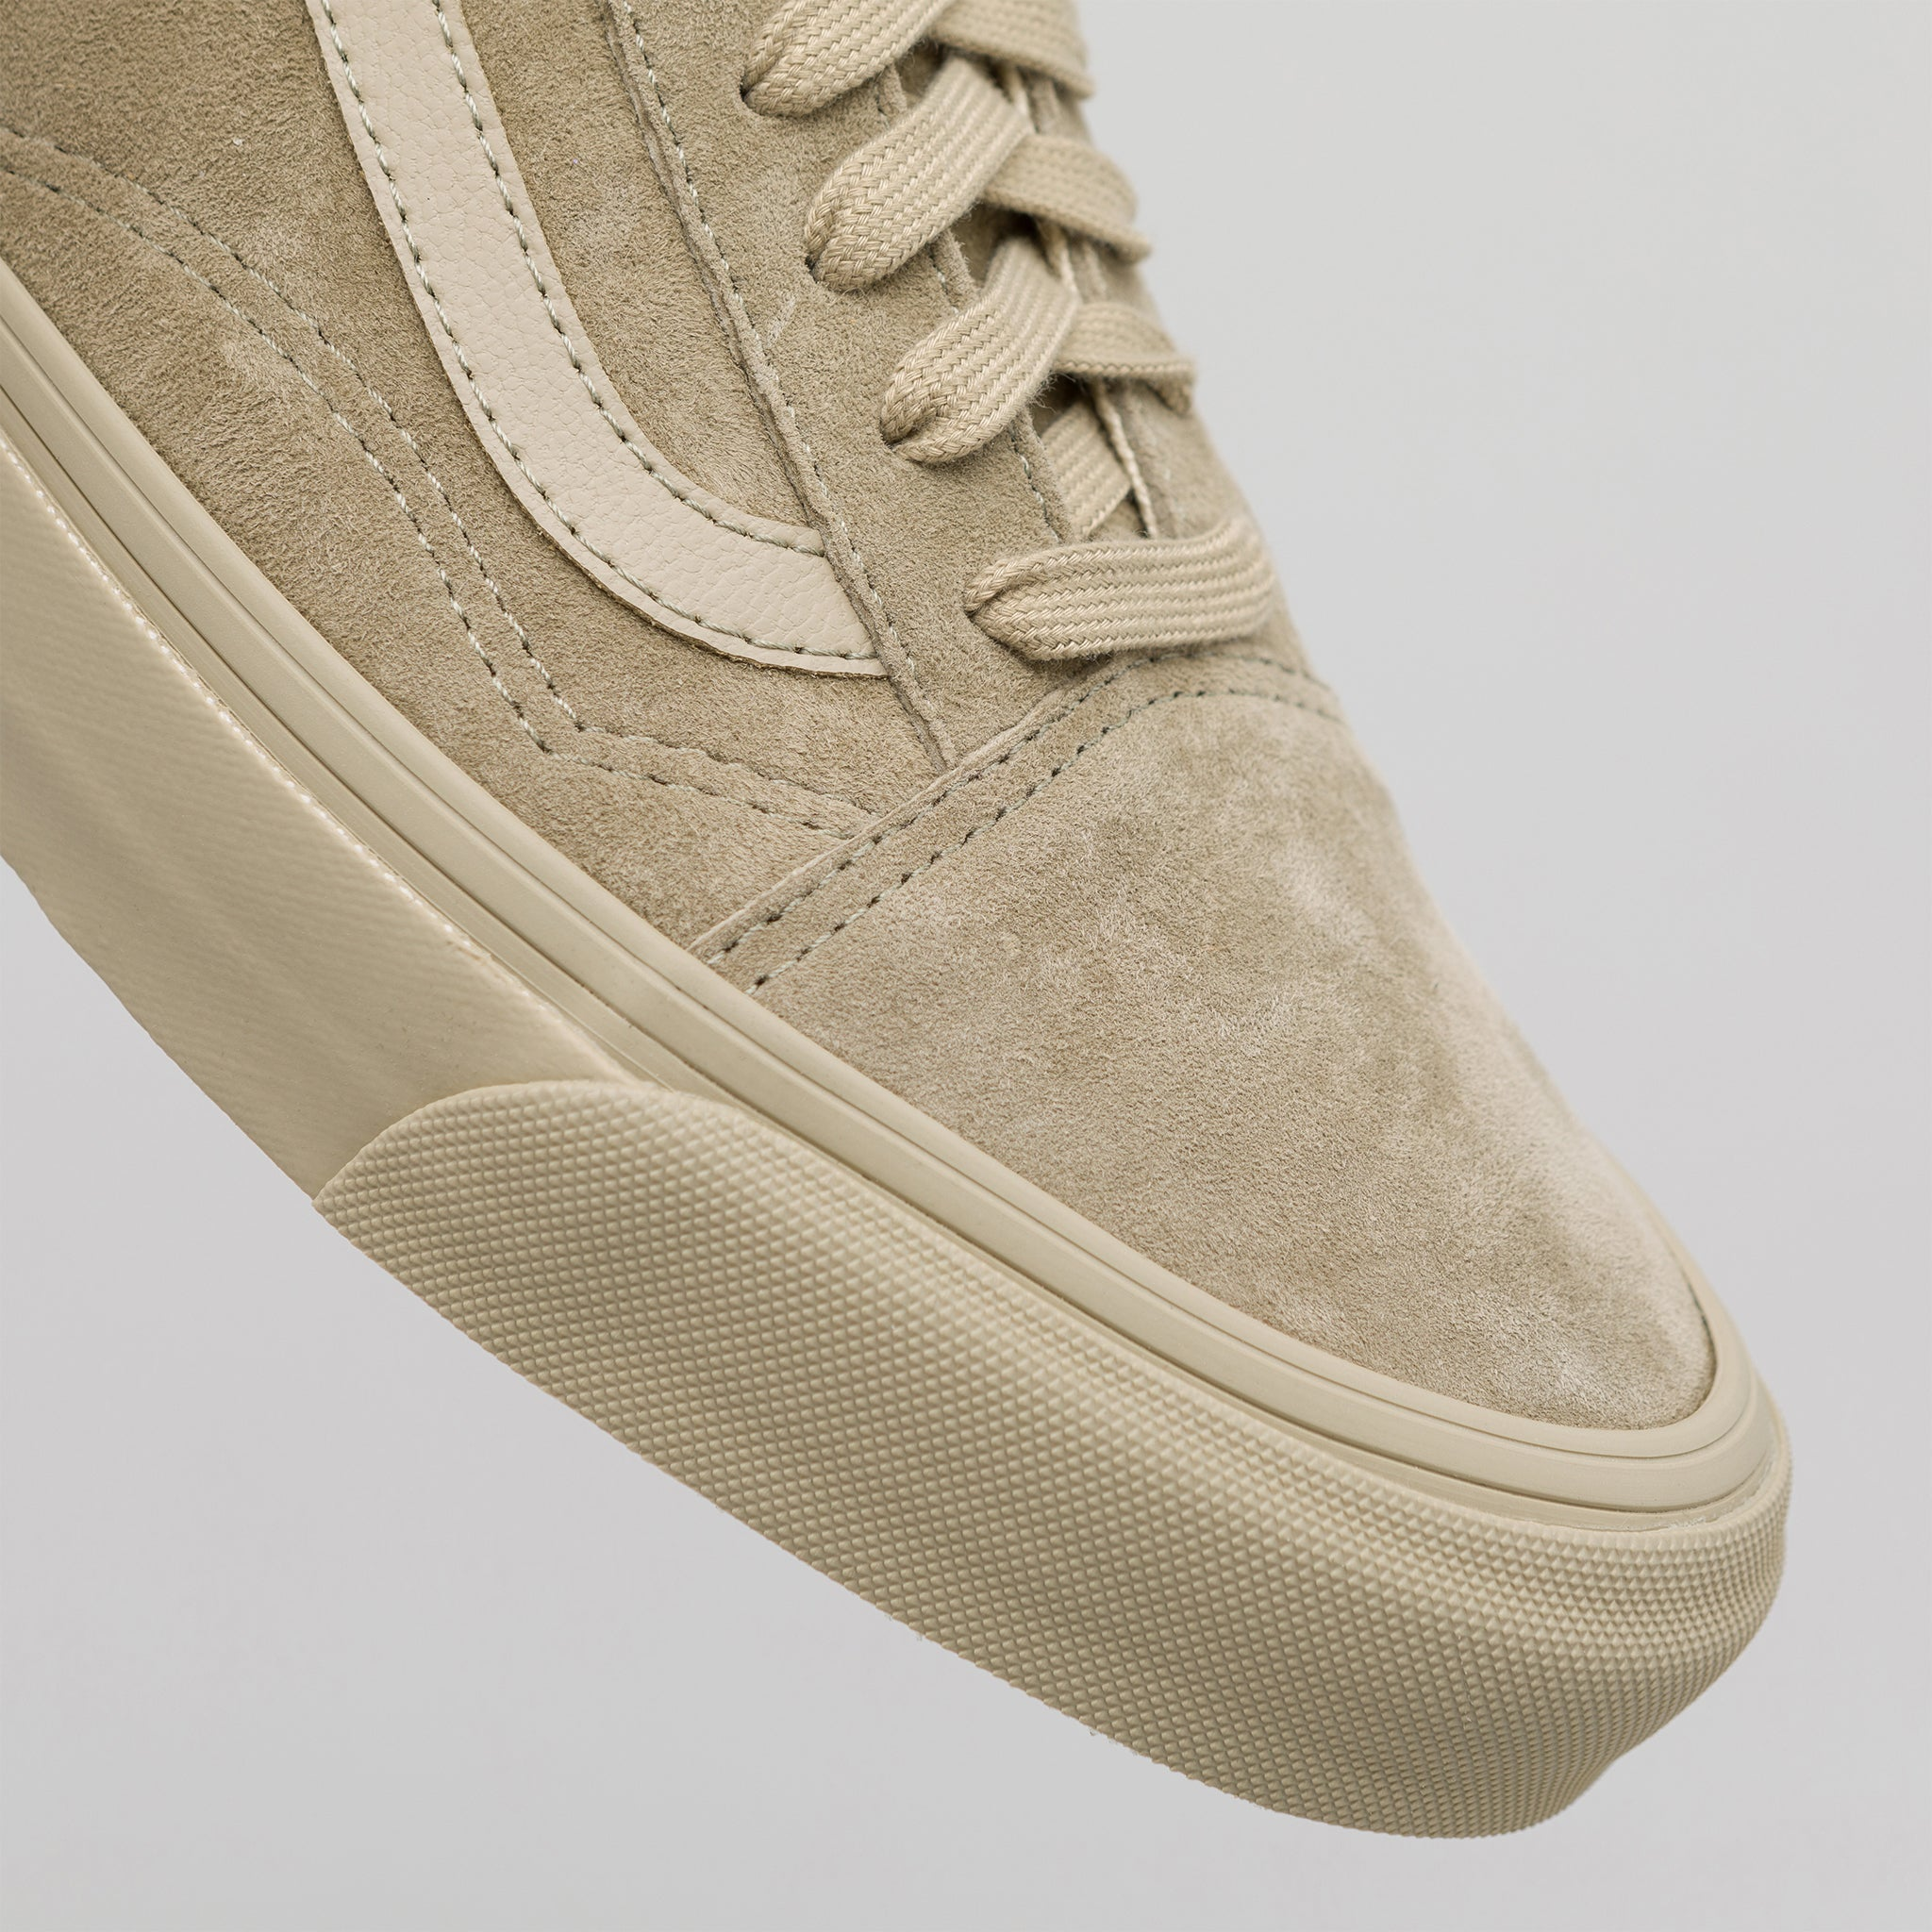 ffd1aa59d0 Vans Vault Old Skool LX Leather Suede in Taupe